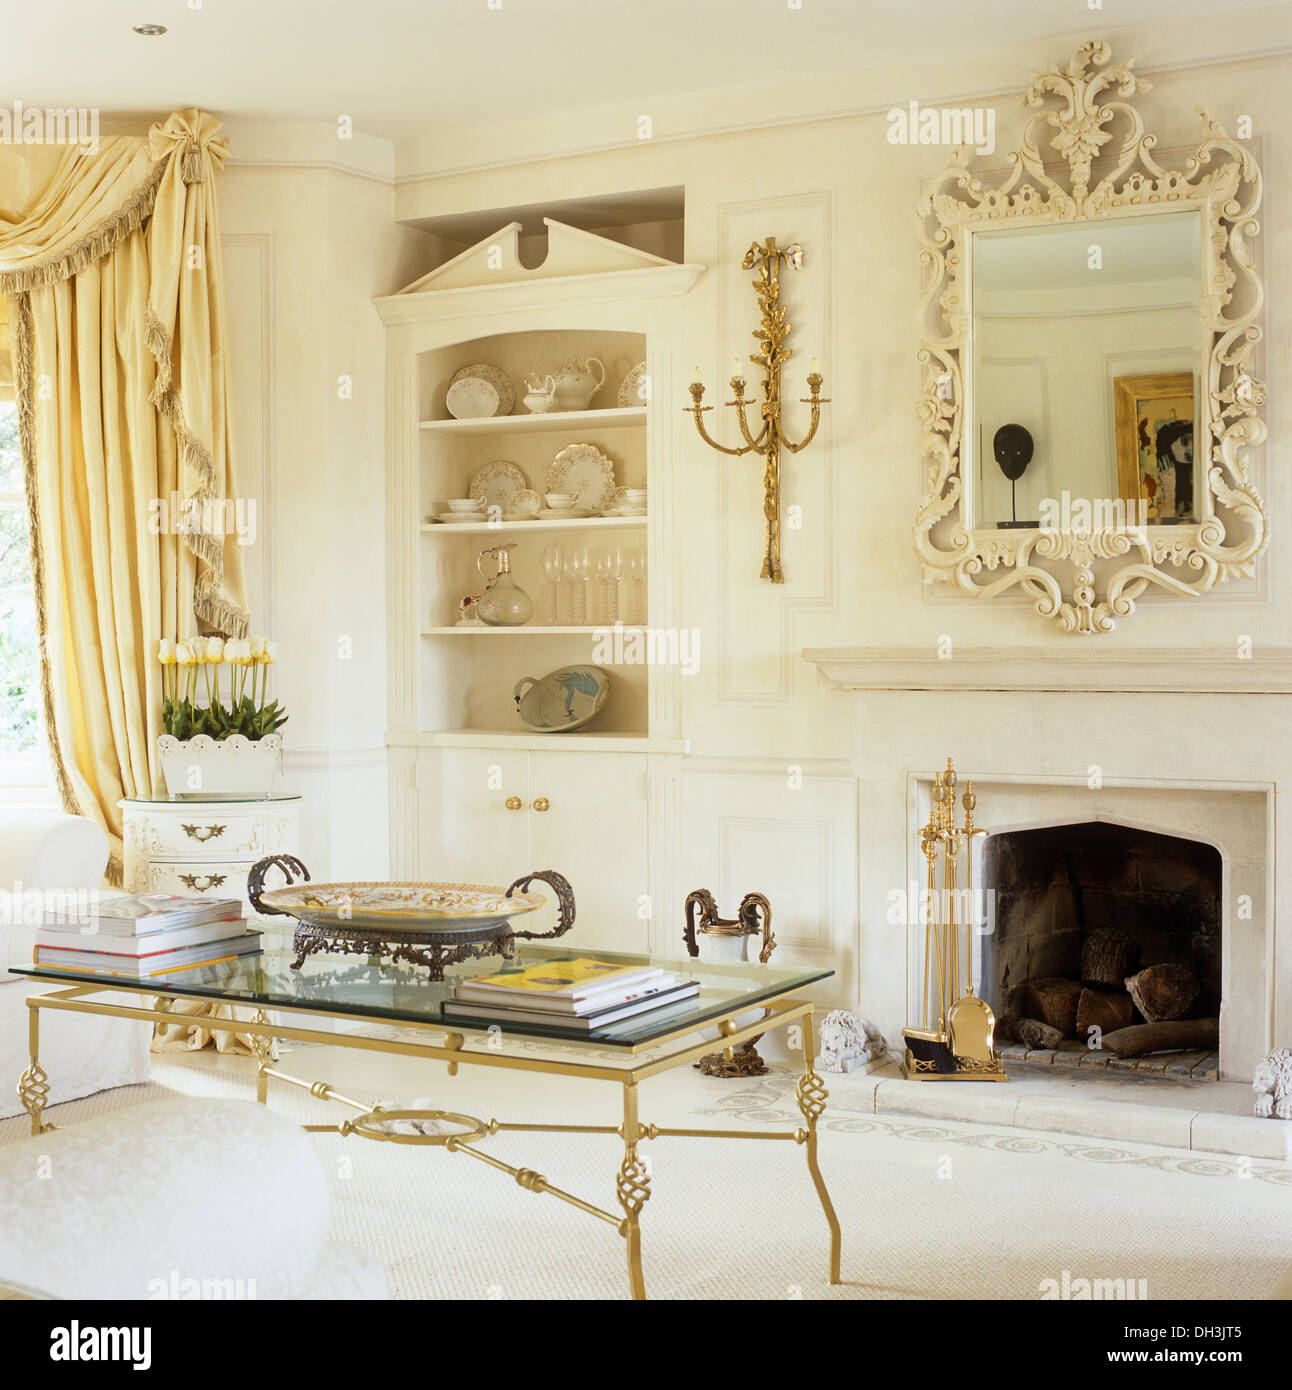 Glass Topped Gold Coffee Table In Front Of Fireplace In Traditional Drawing  Room With Alcove Shelves And Silk Drapes